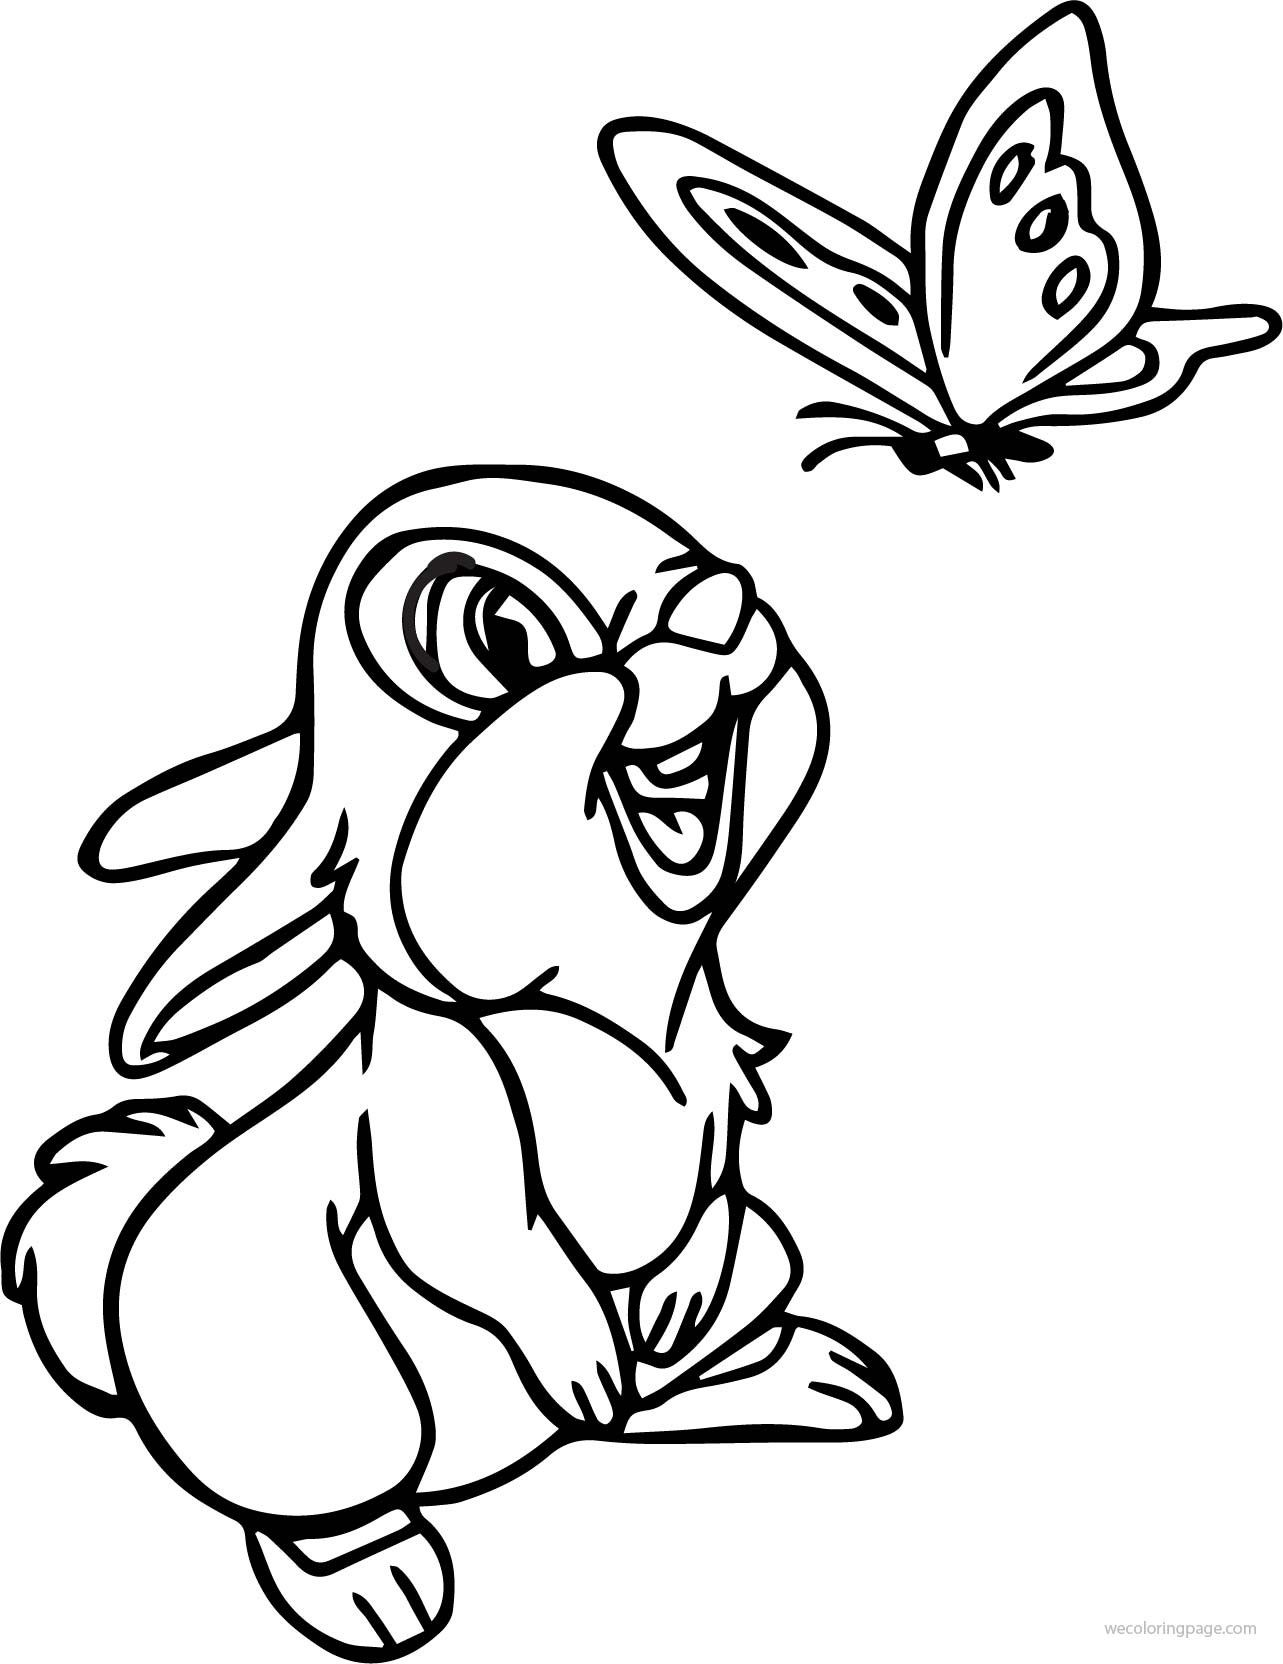 Butterfly Coloring Pages For Kids Cartoon Butterfly Coloring Pages Kids Drawing Of 50 Free Cartoon Coloring Pages Butterfly Coloring Page Bunny Coloring Pages [ 1664 x 1283 Pixel ]